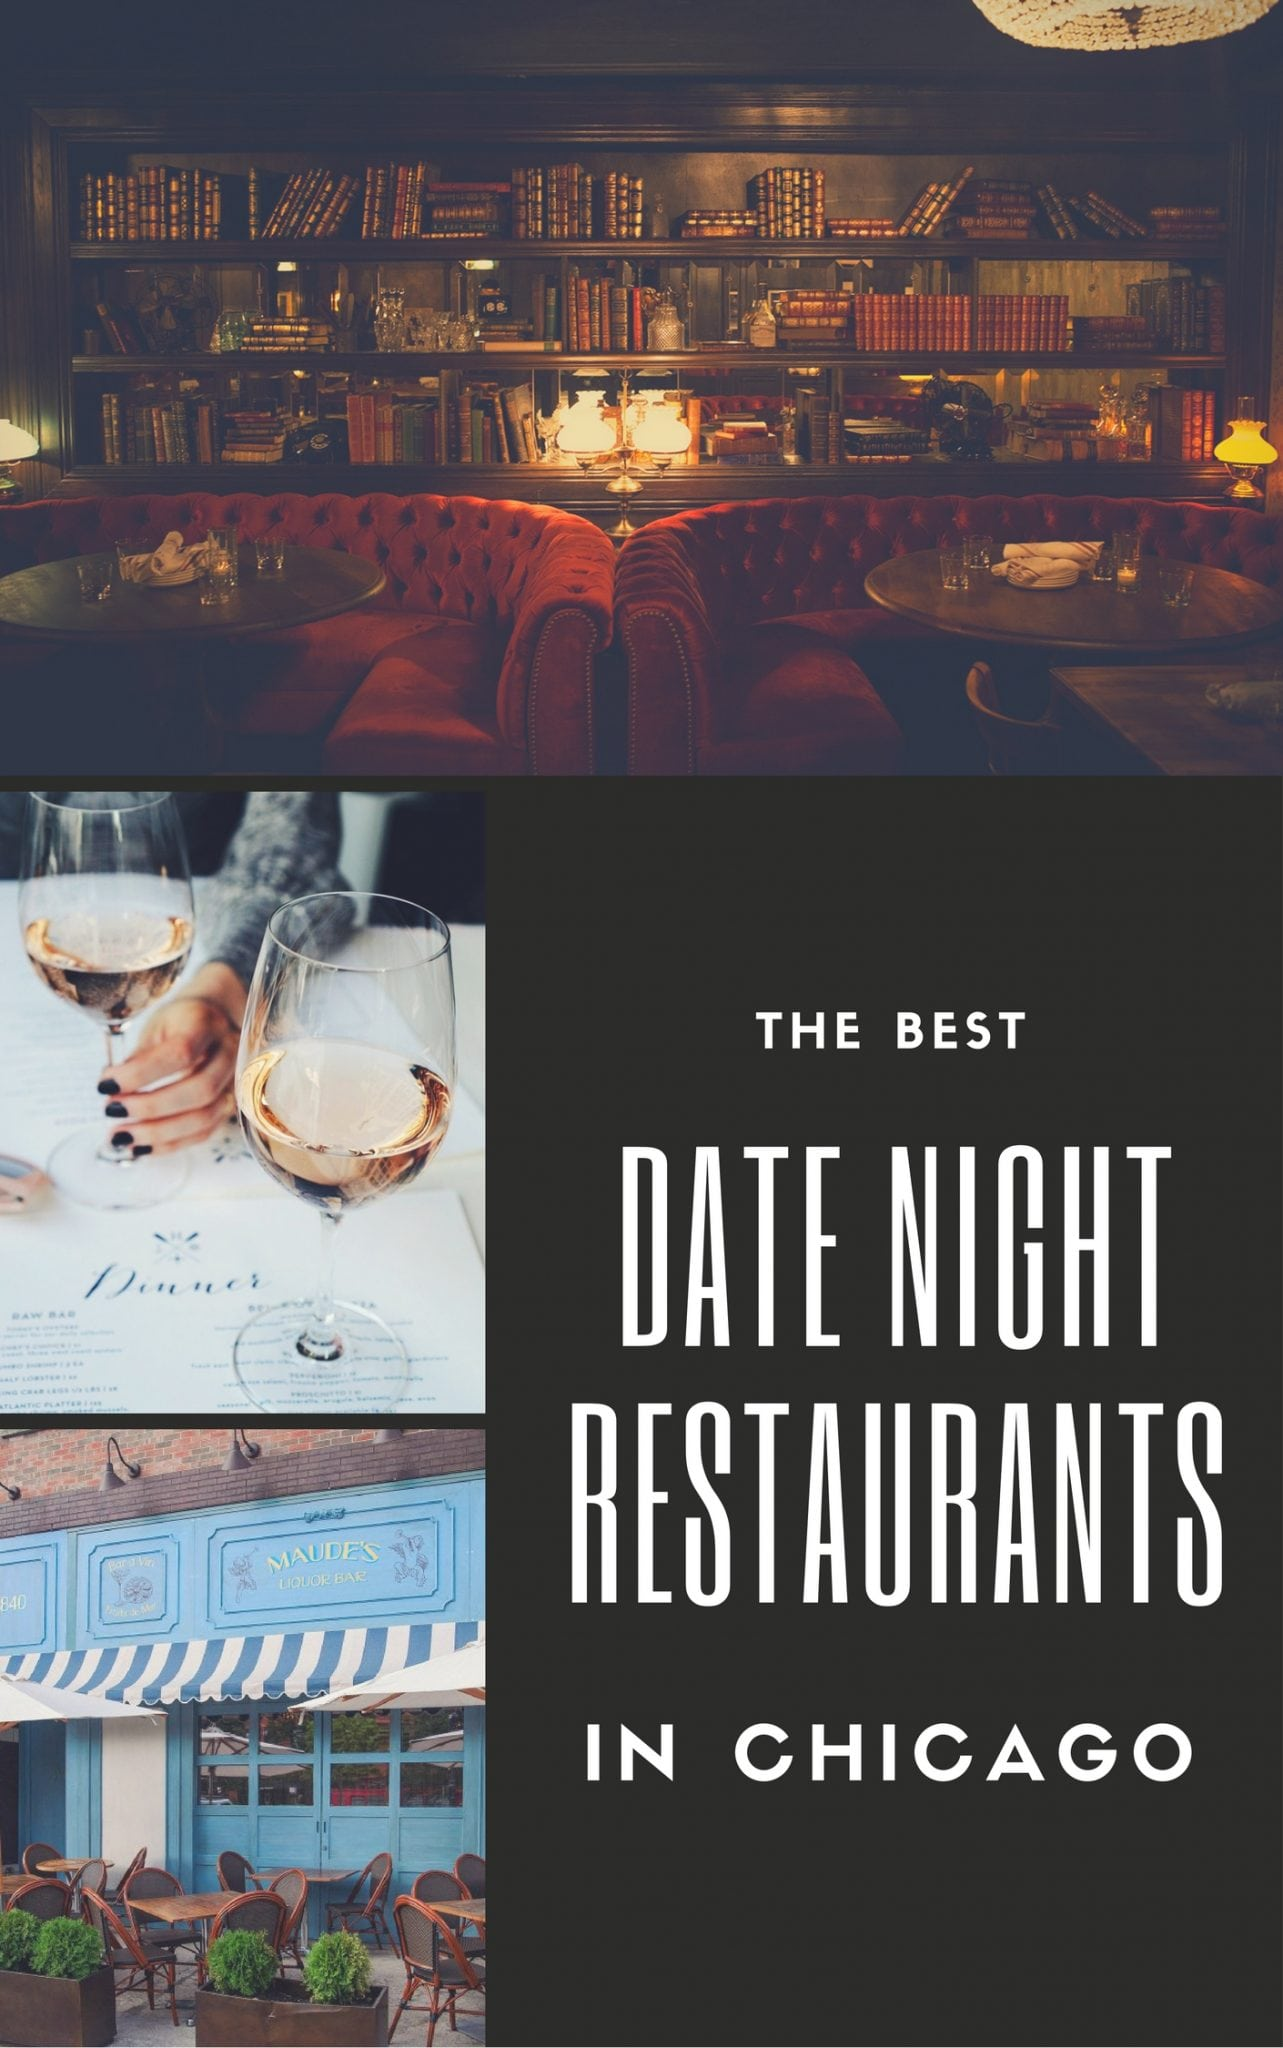 Chicago date night restaurants: The top 15 date night restaurants in Chicago